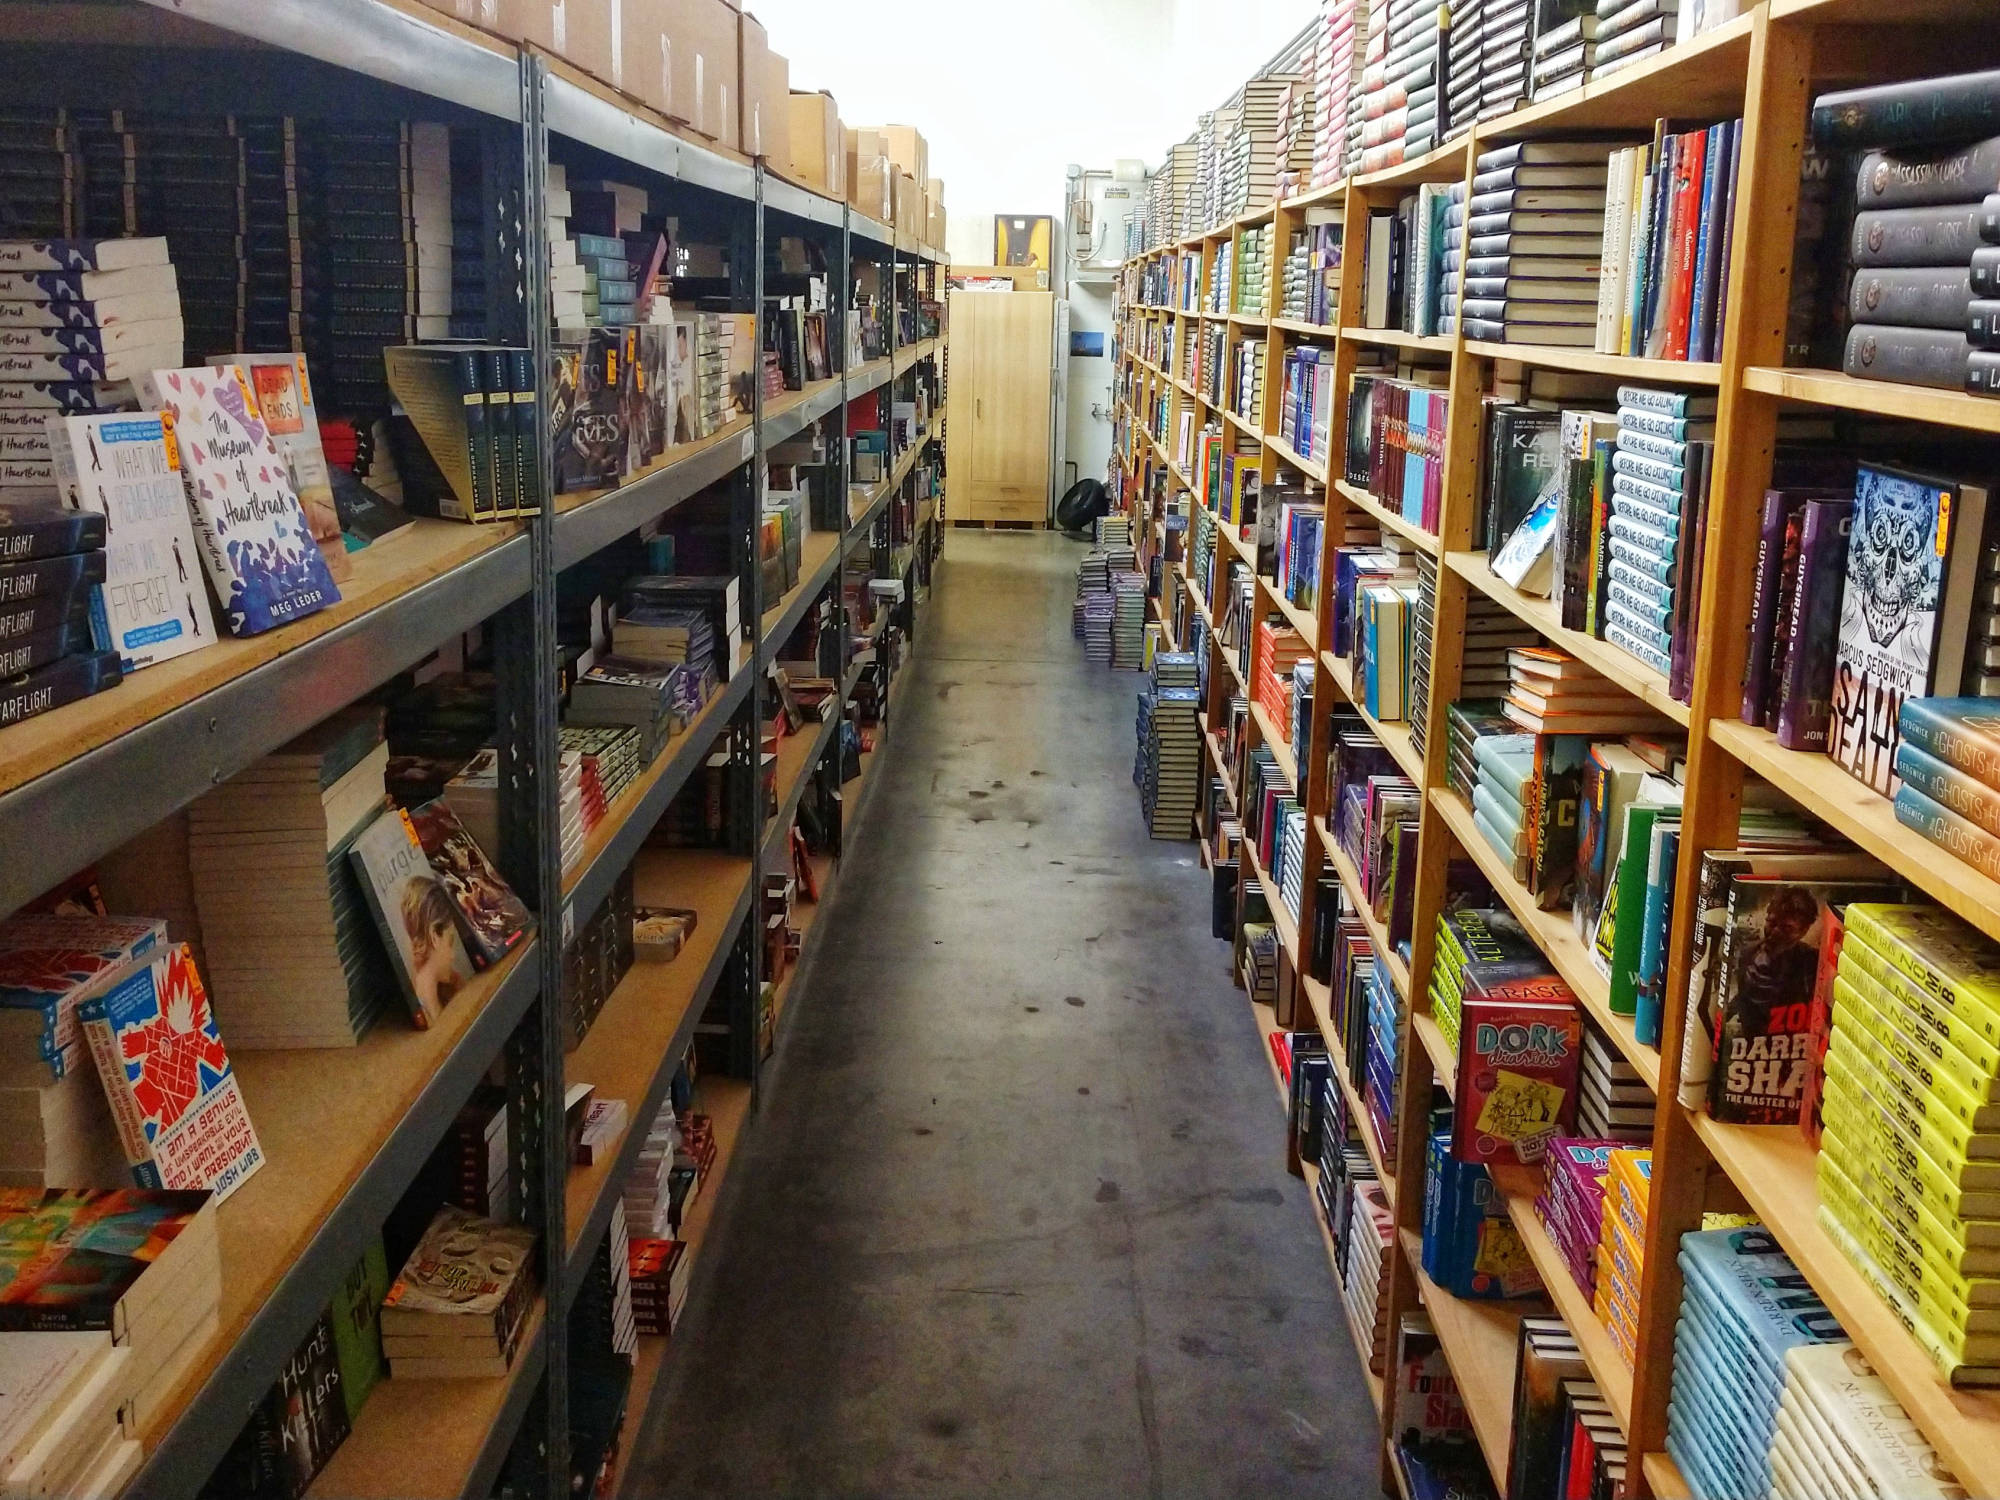 long double sided row of bookshelves